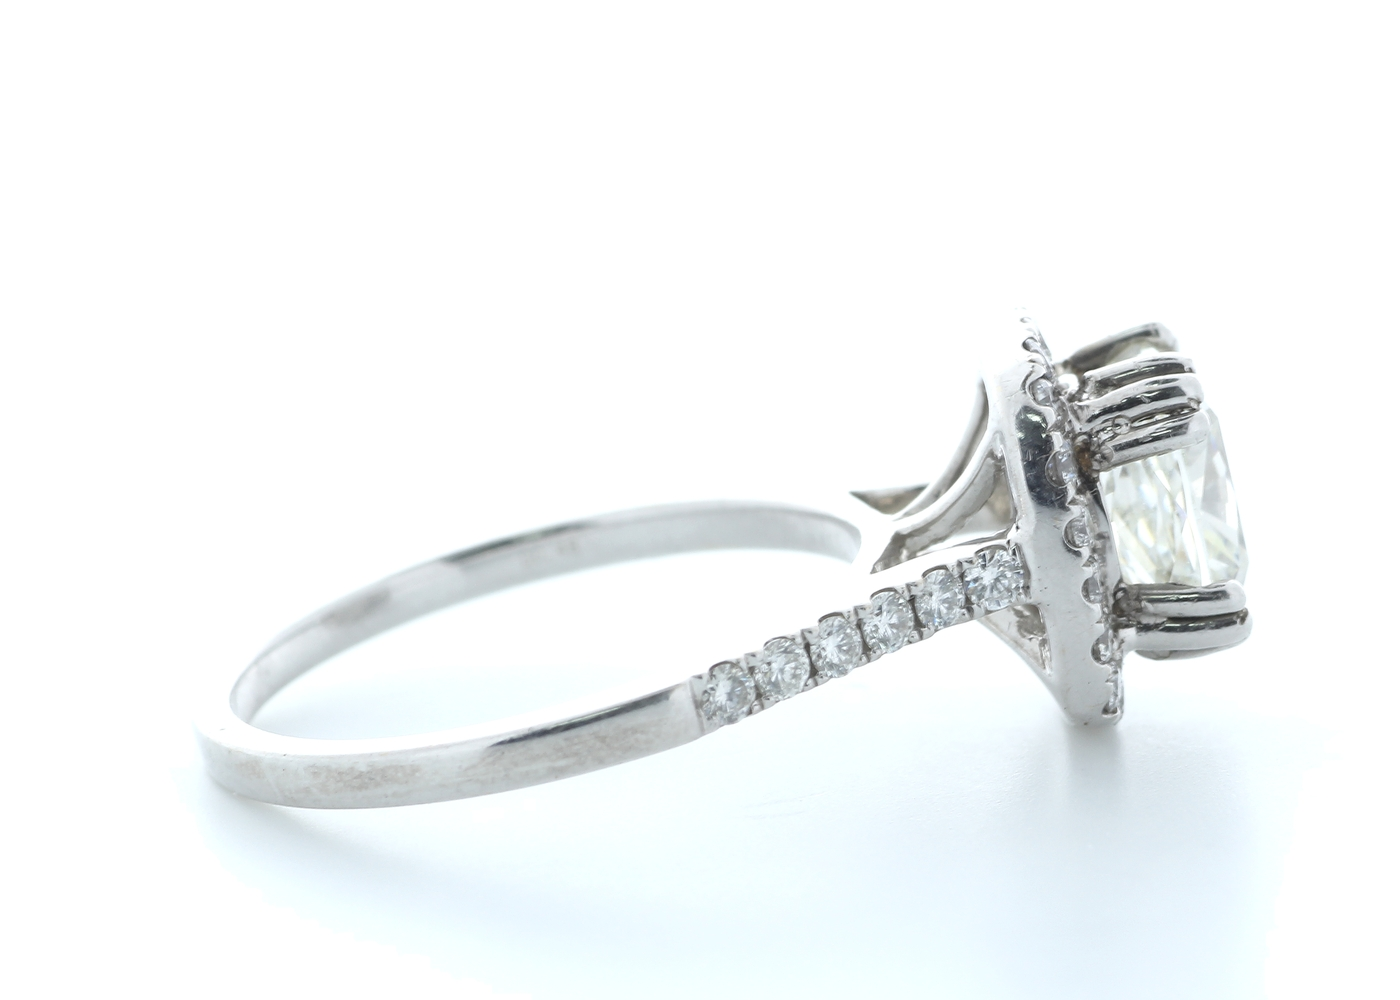 18ct White Gold Single Stone With Halo Setting Ring 2.63 (2.13) Carats - Image 4 of 5